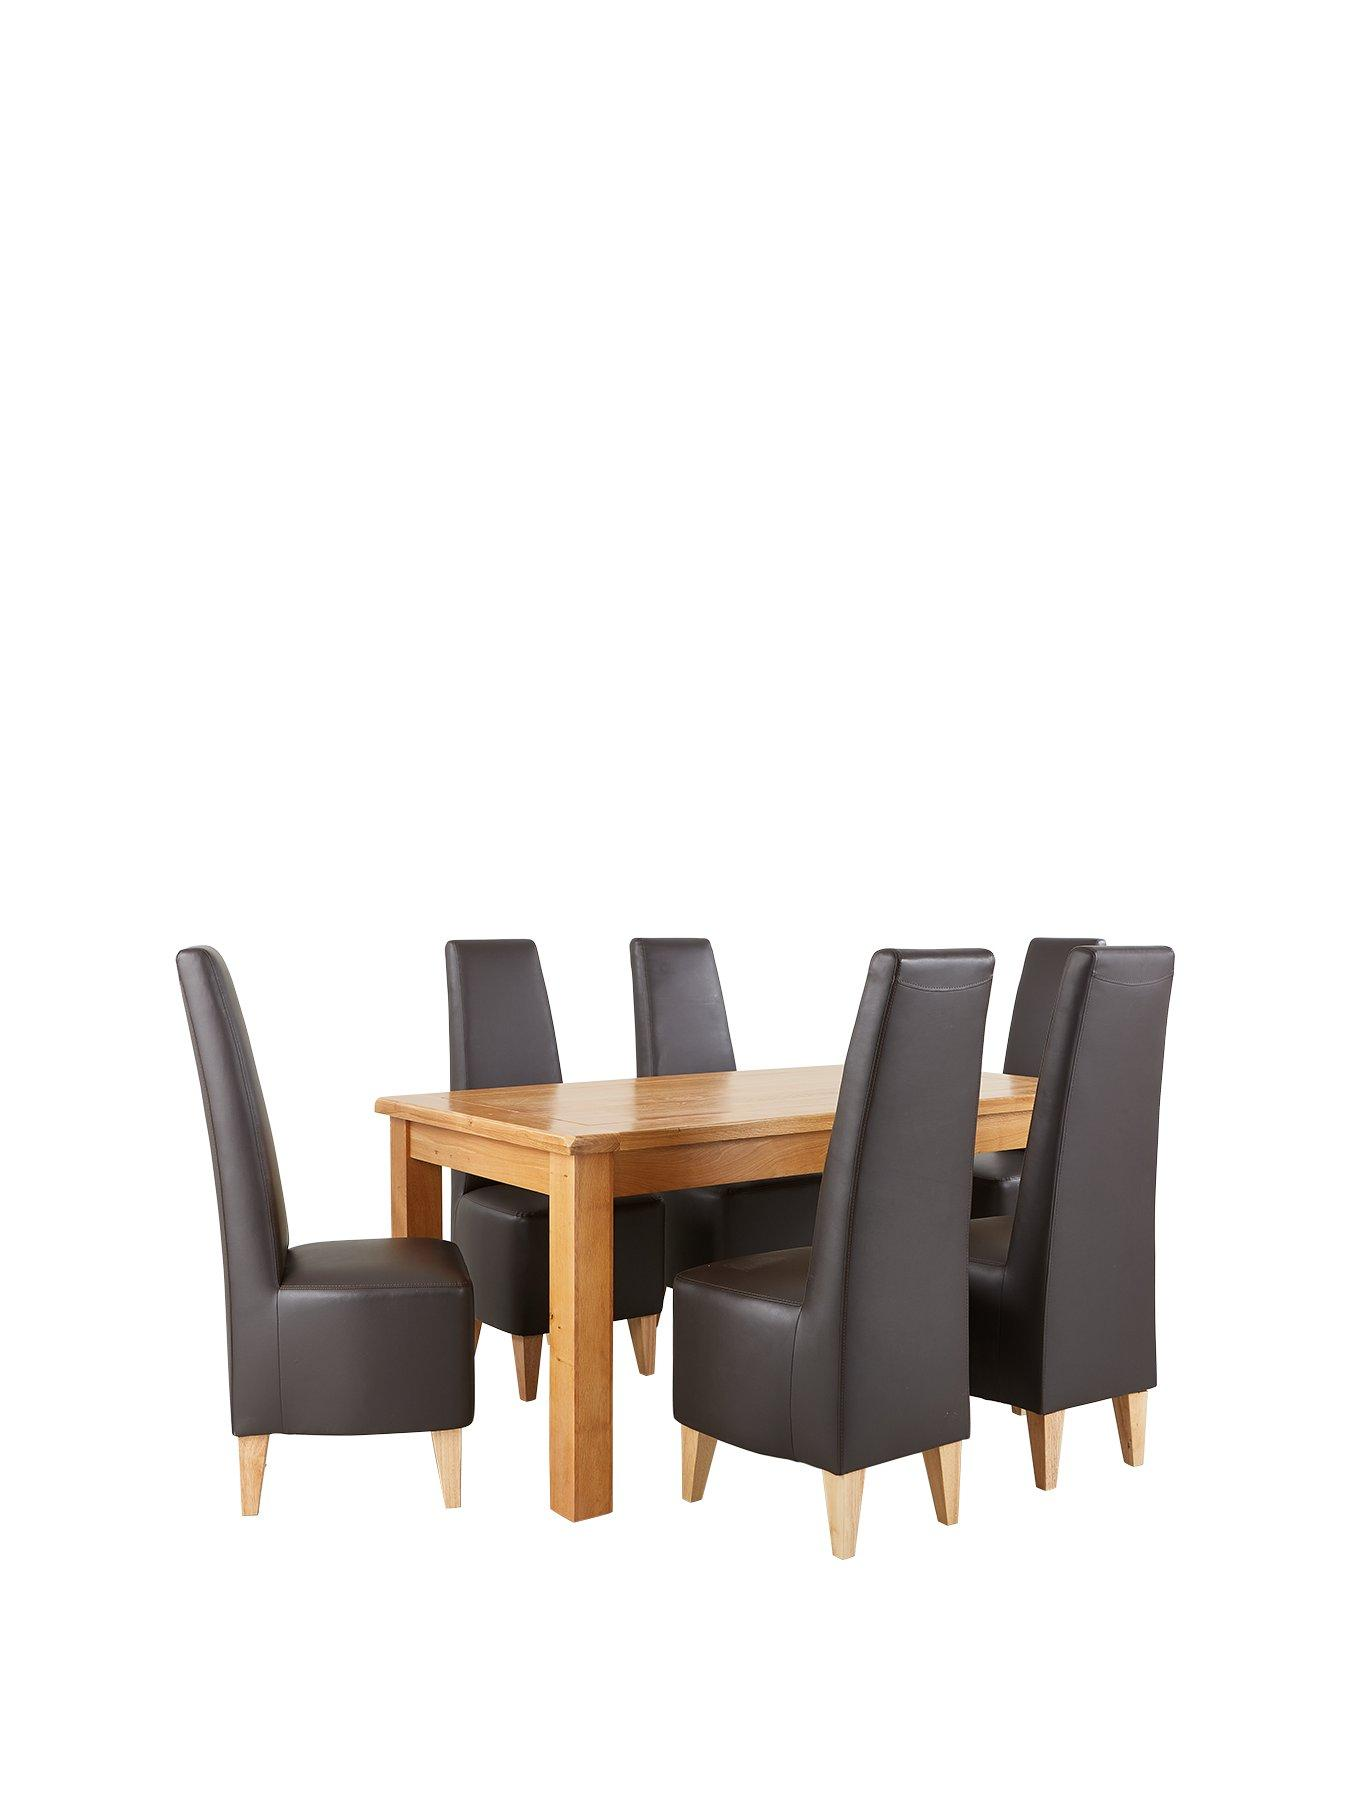 dining room sets uk. oakland 170cm solid wood dining table + 6 manhattan chairs room sets uk a